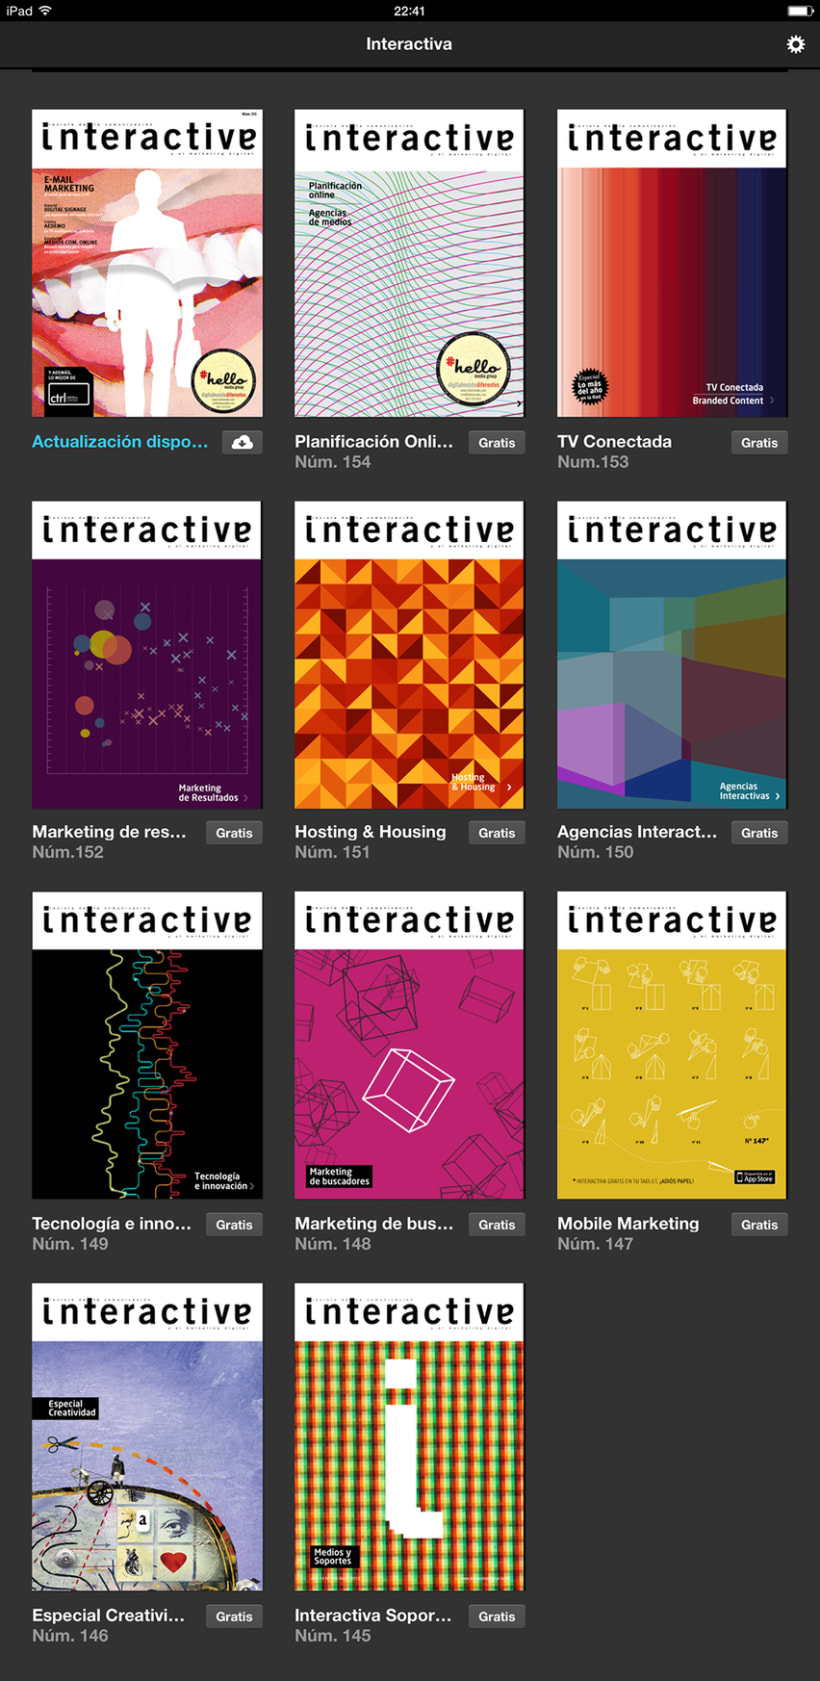 Interactiva tablet magazine 12